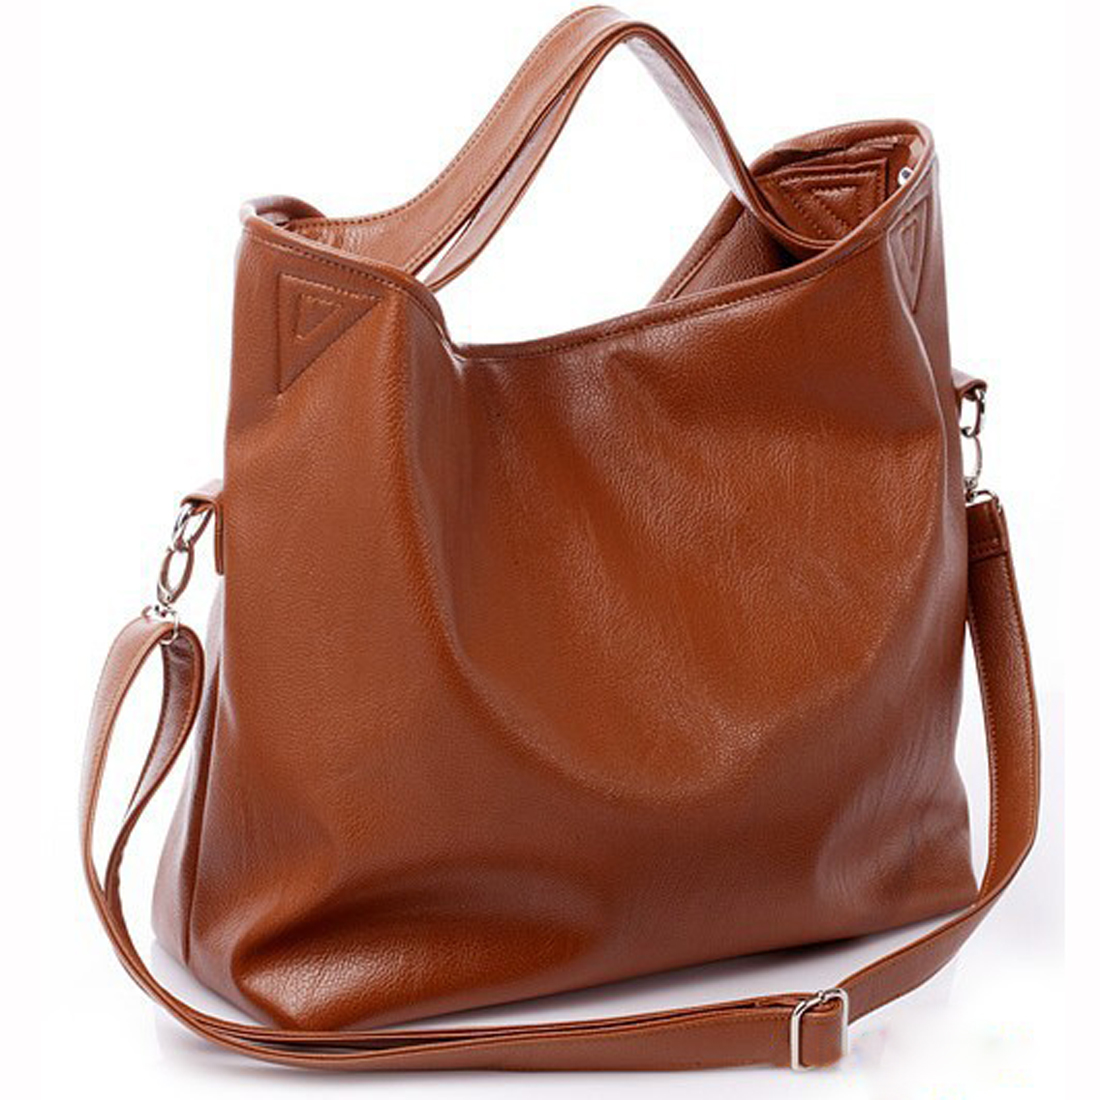 YEJIA FASHION Large Capacity Totes Bag Women Handbag Long Strap Shoulder Bags Casual Lady Cross Body Bags Work Business Bags